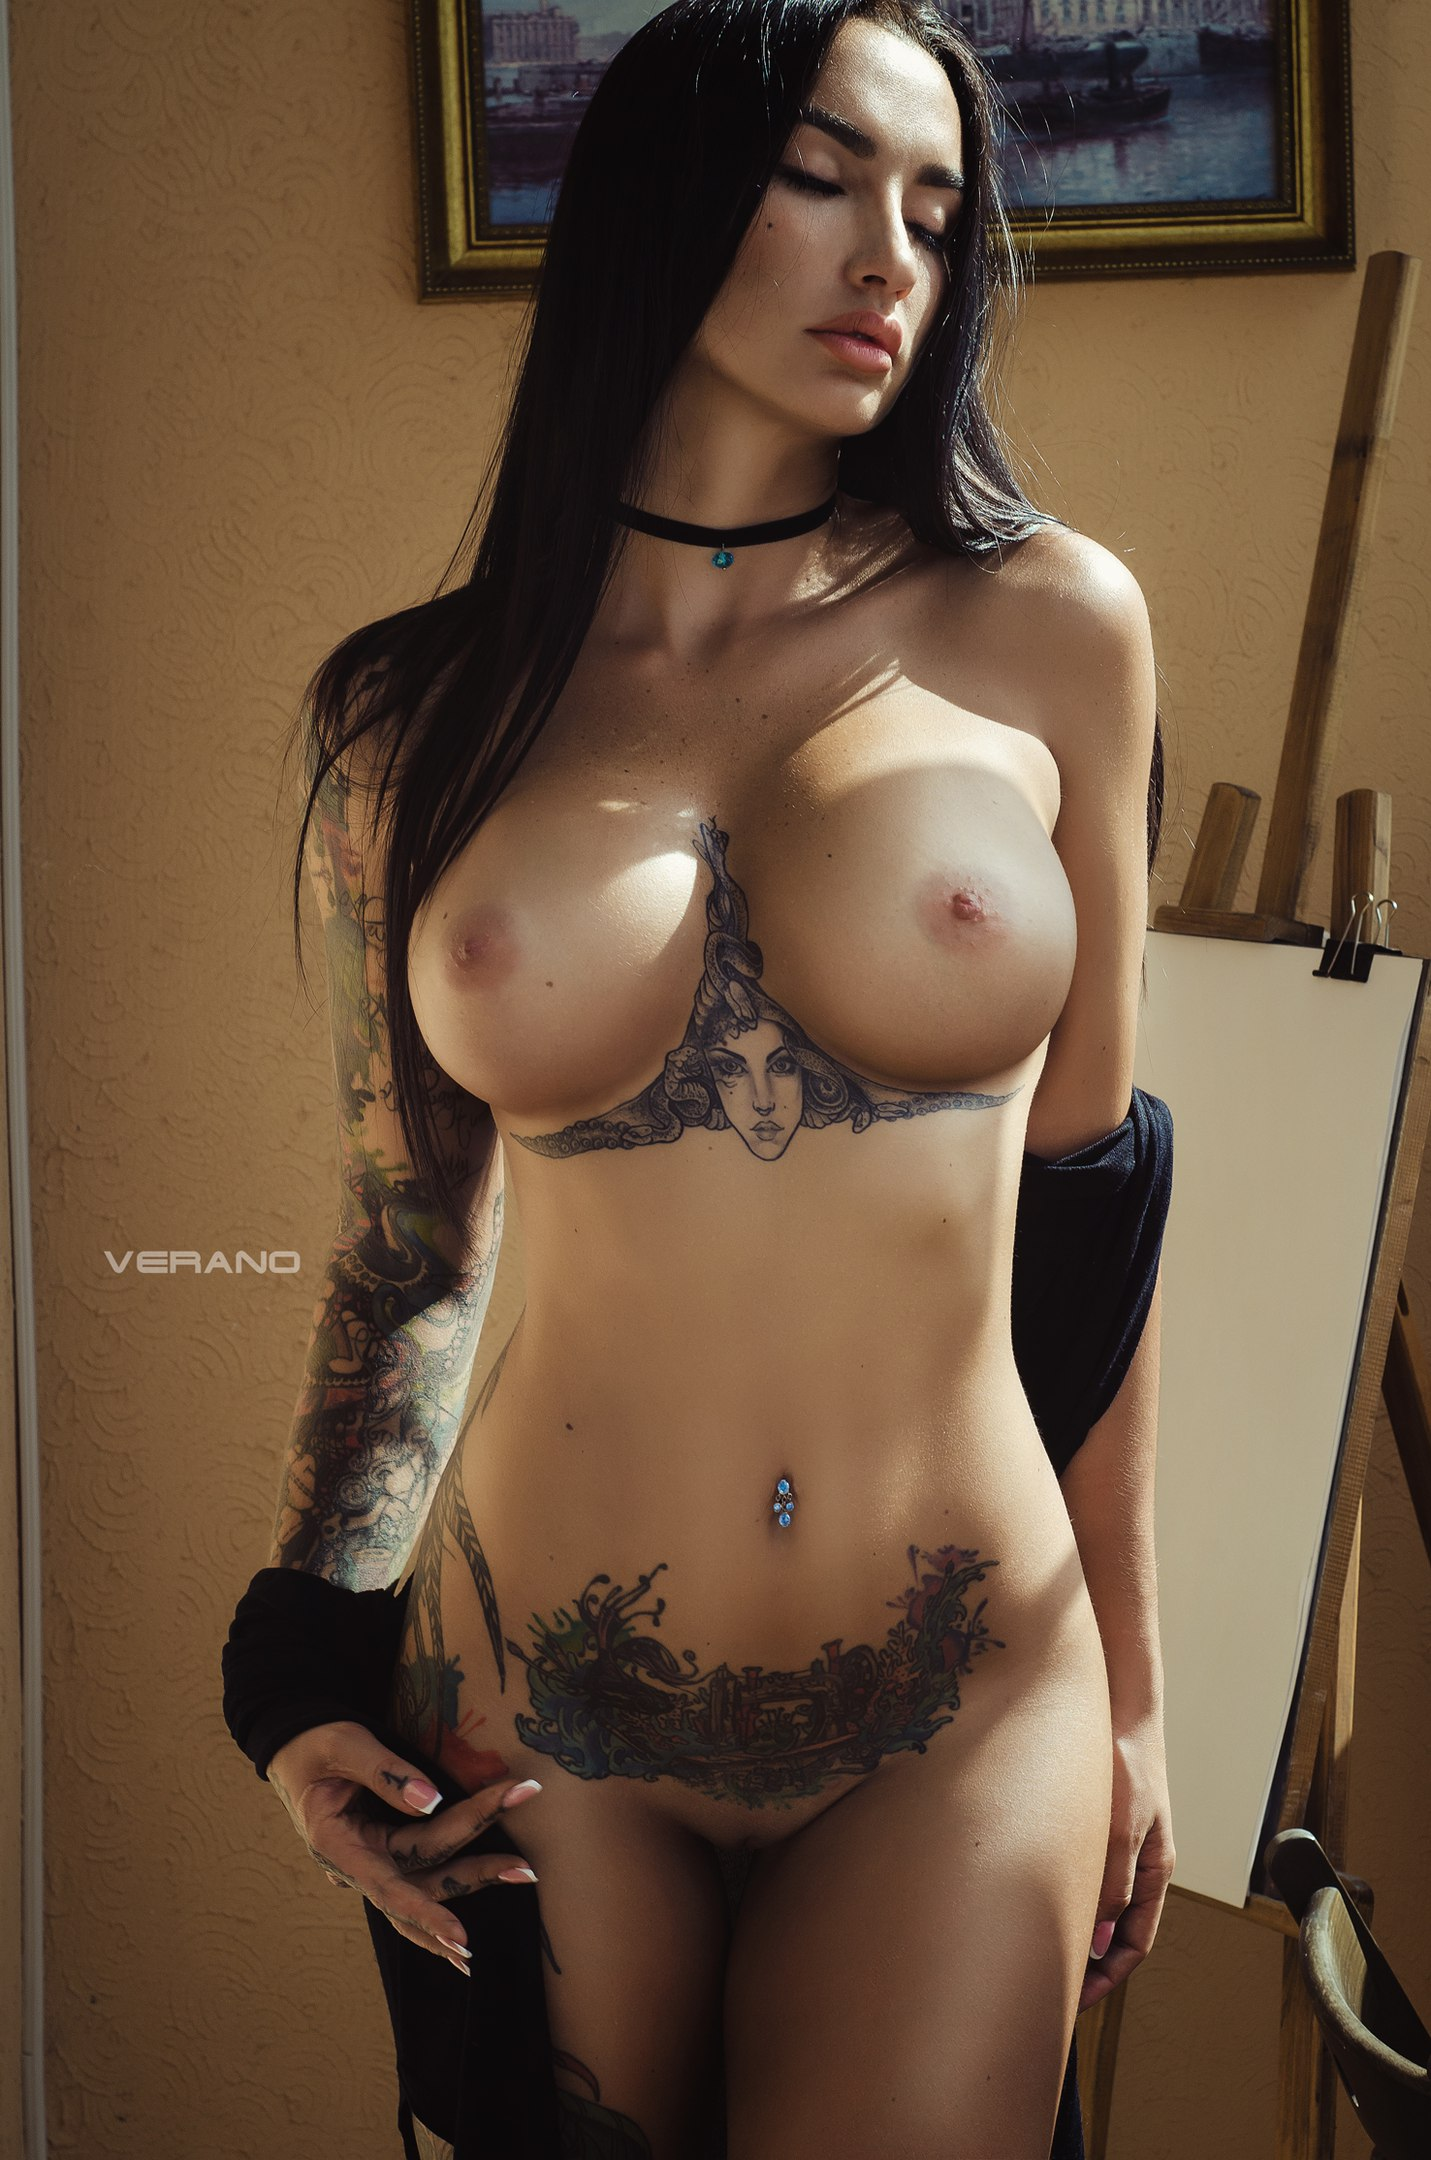 100 Images of Angelica Anderson Naked